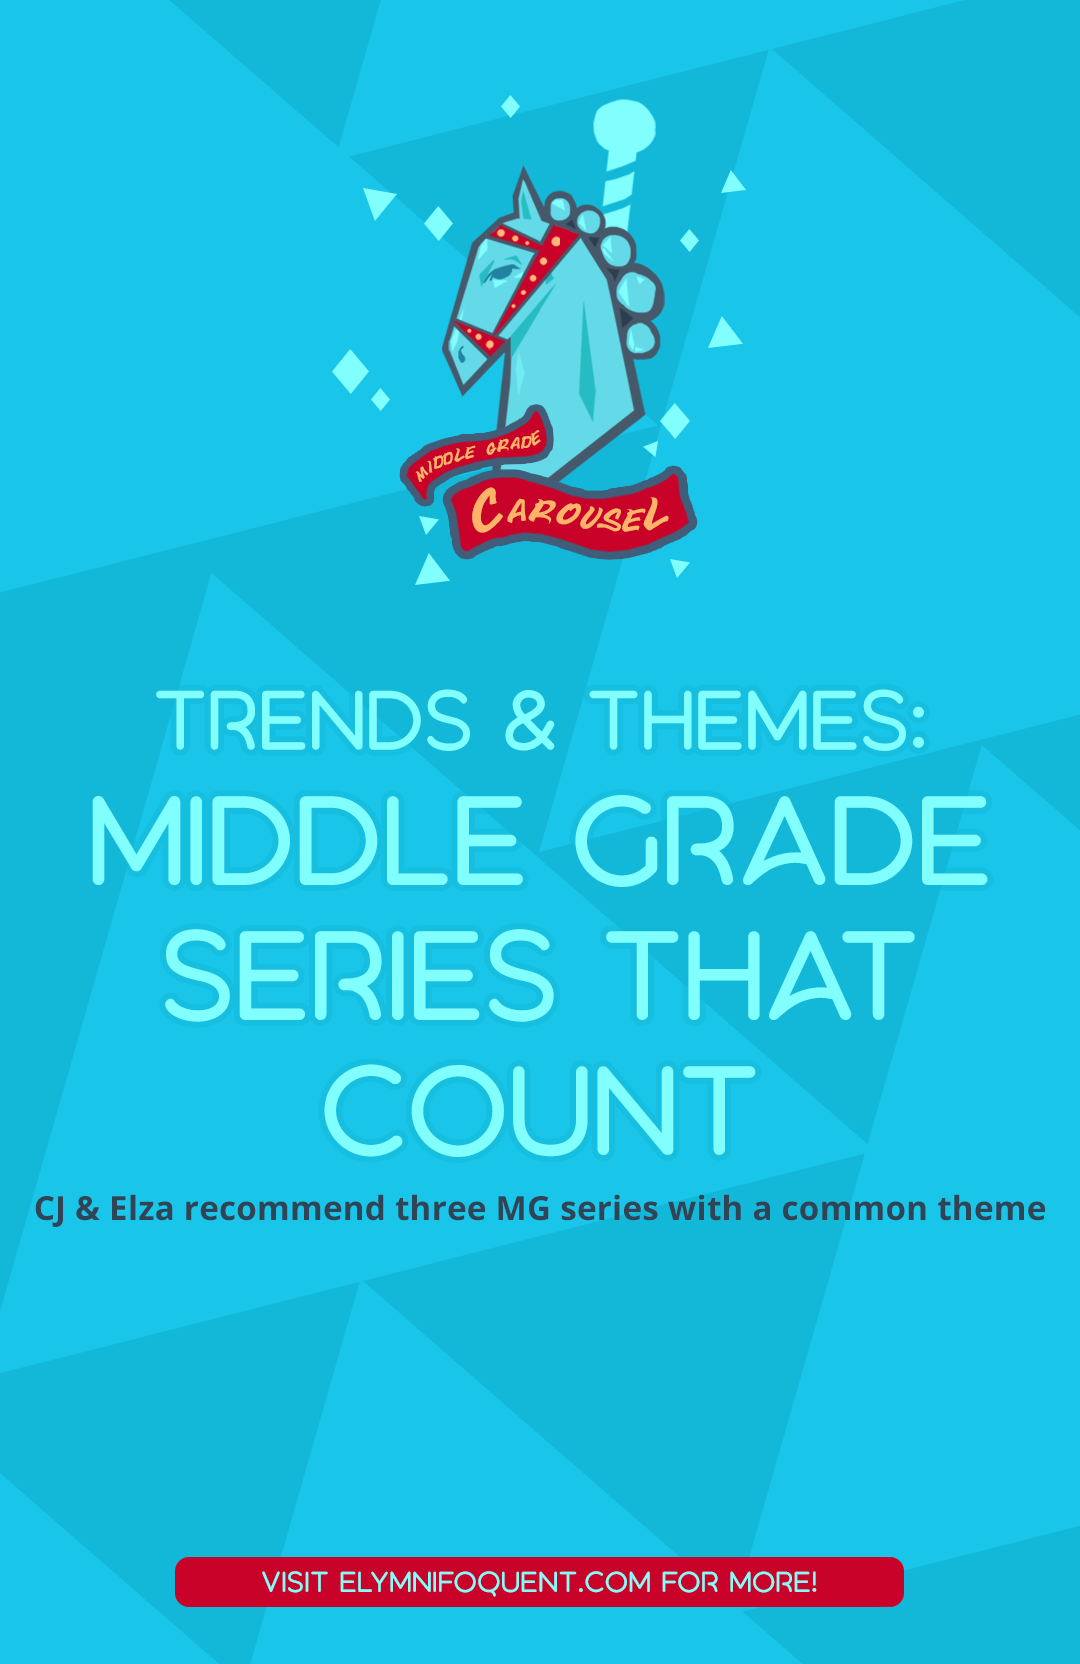 Trends & Themes: Middle Grade Series that Count. CJ & Elza recommend three MG series with a common theme